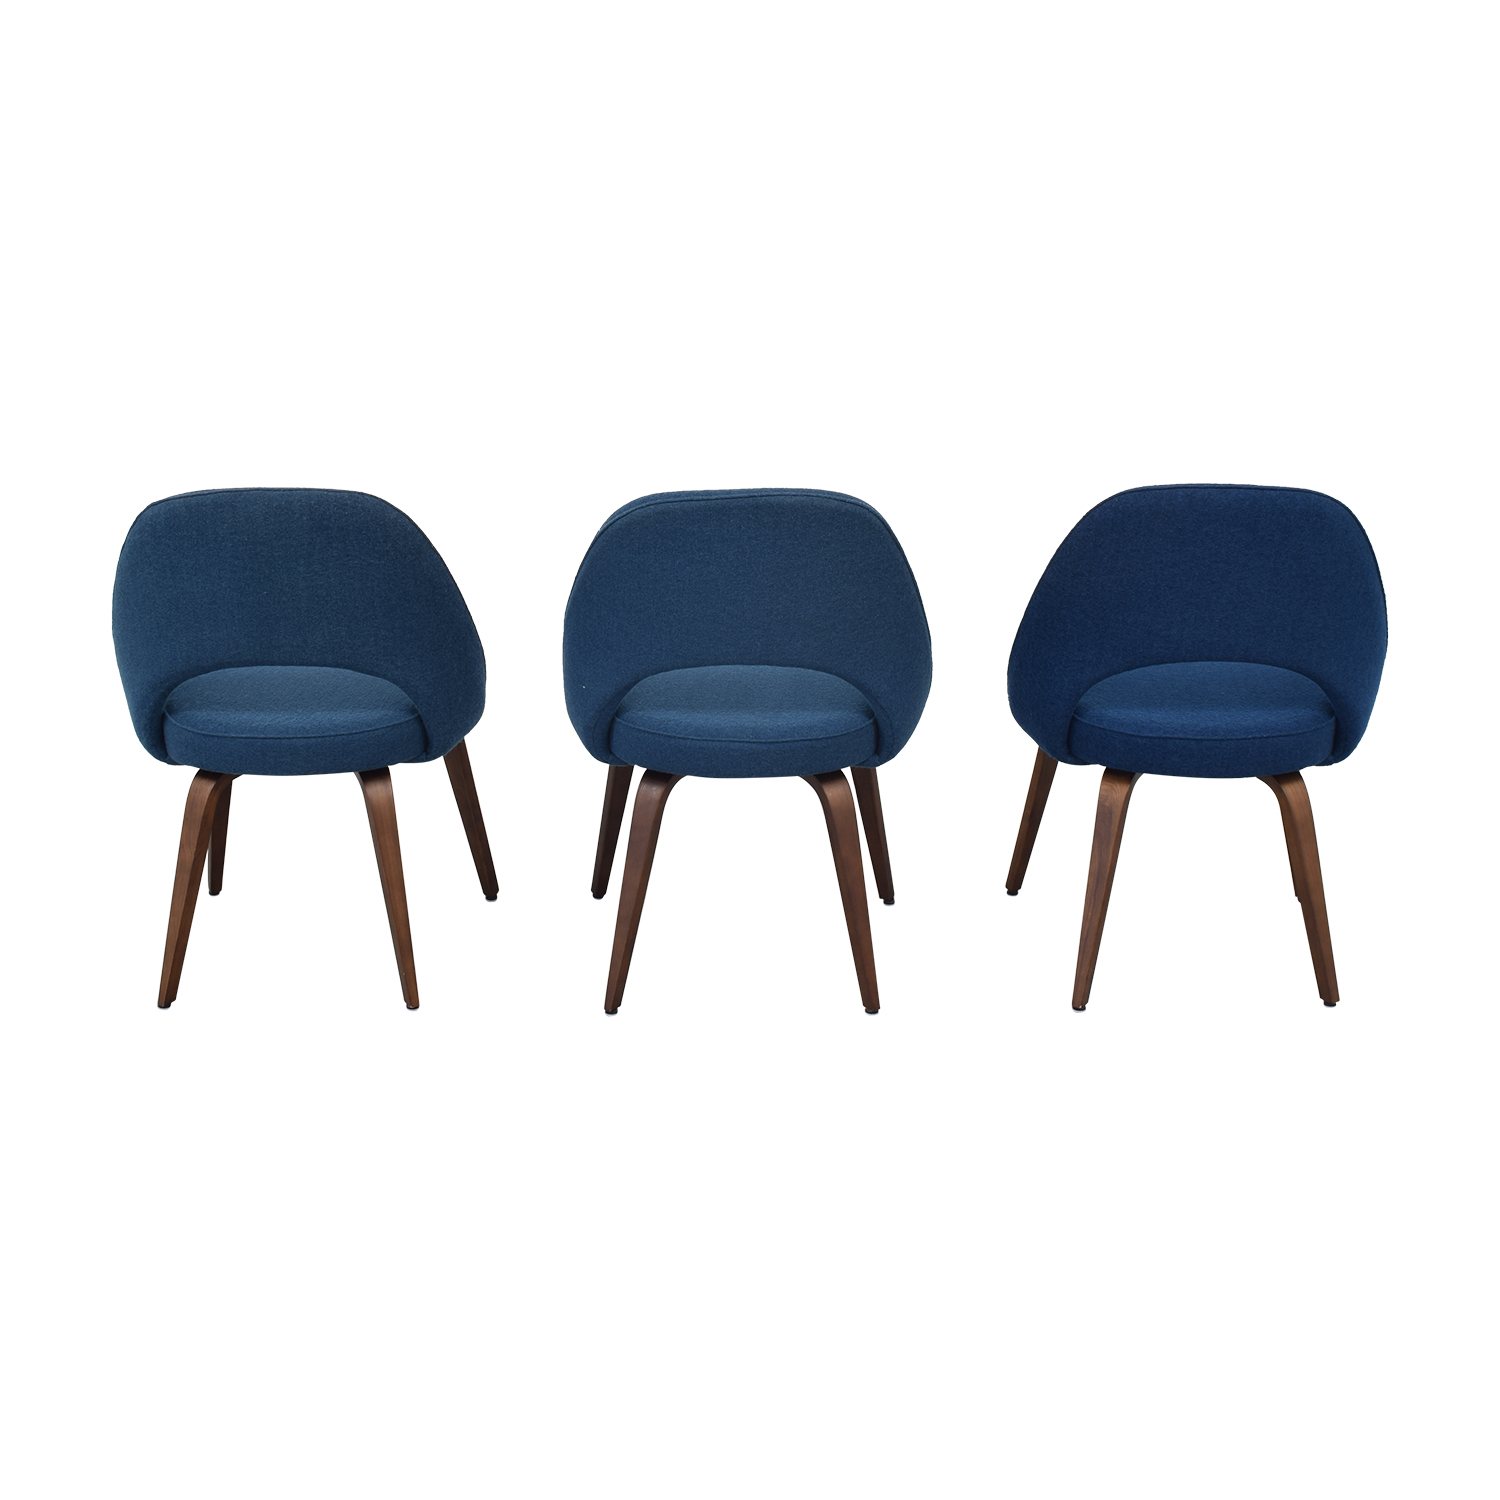 Rove Concepts Rove Concepts Executive Side Chairs nj